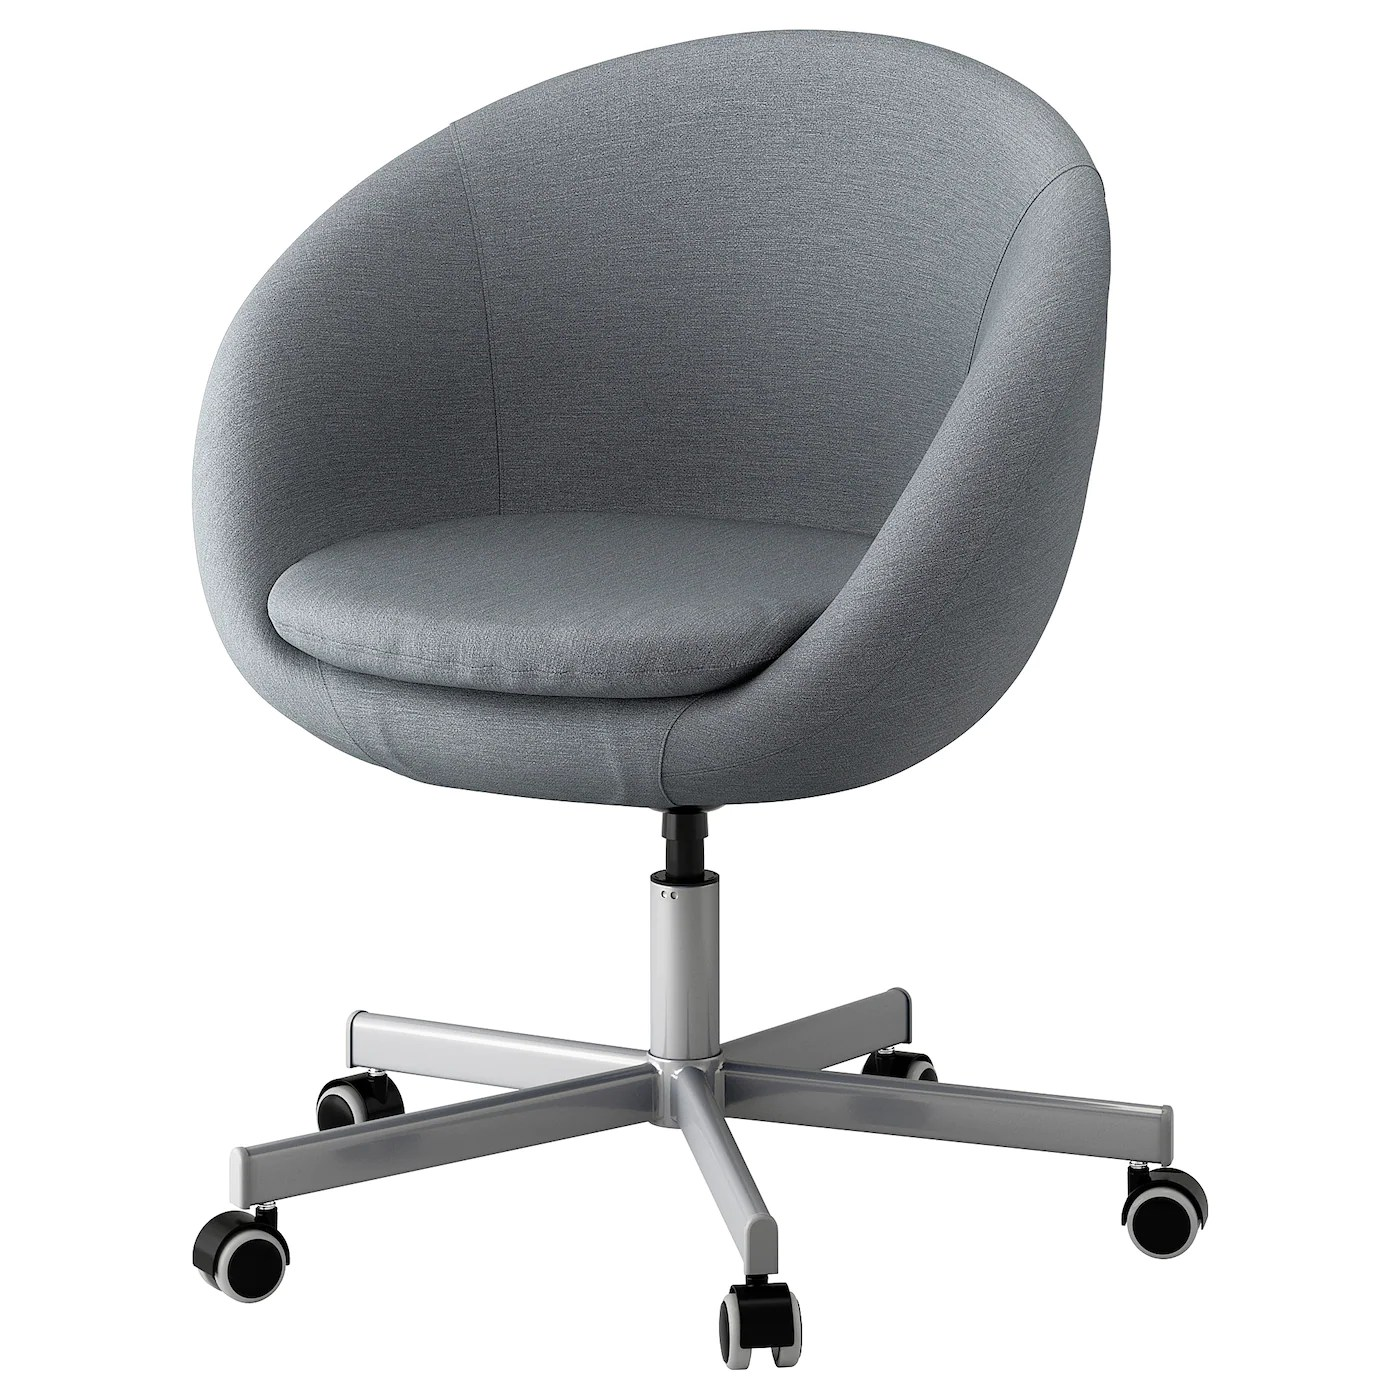 Swival Chairs Skruvsta Swivel Chair Flackarp Grey Ikea